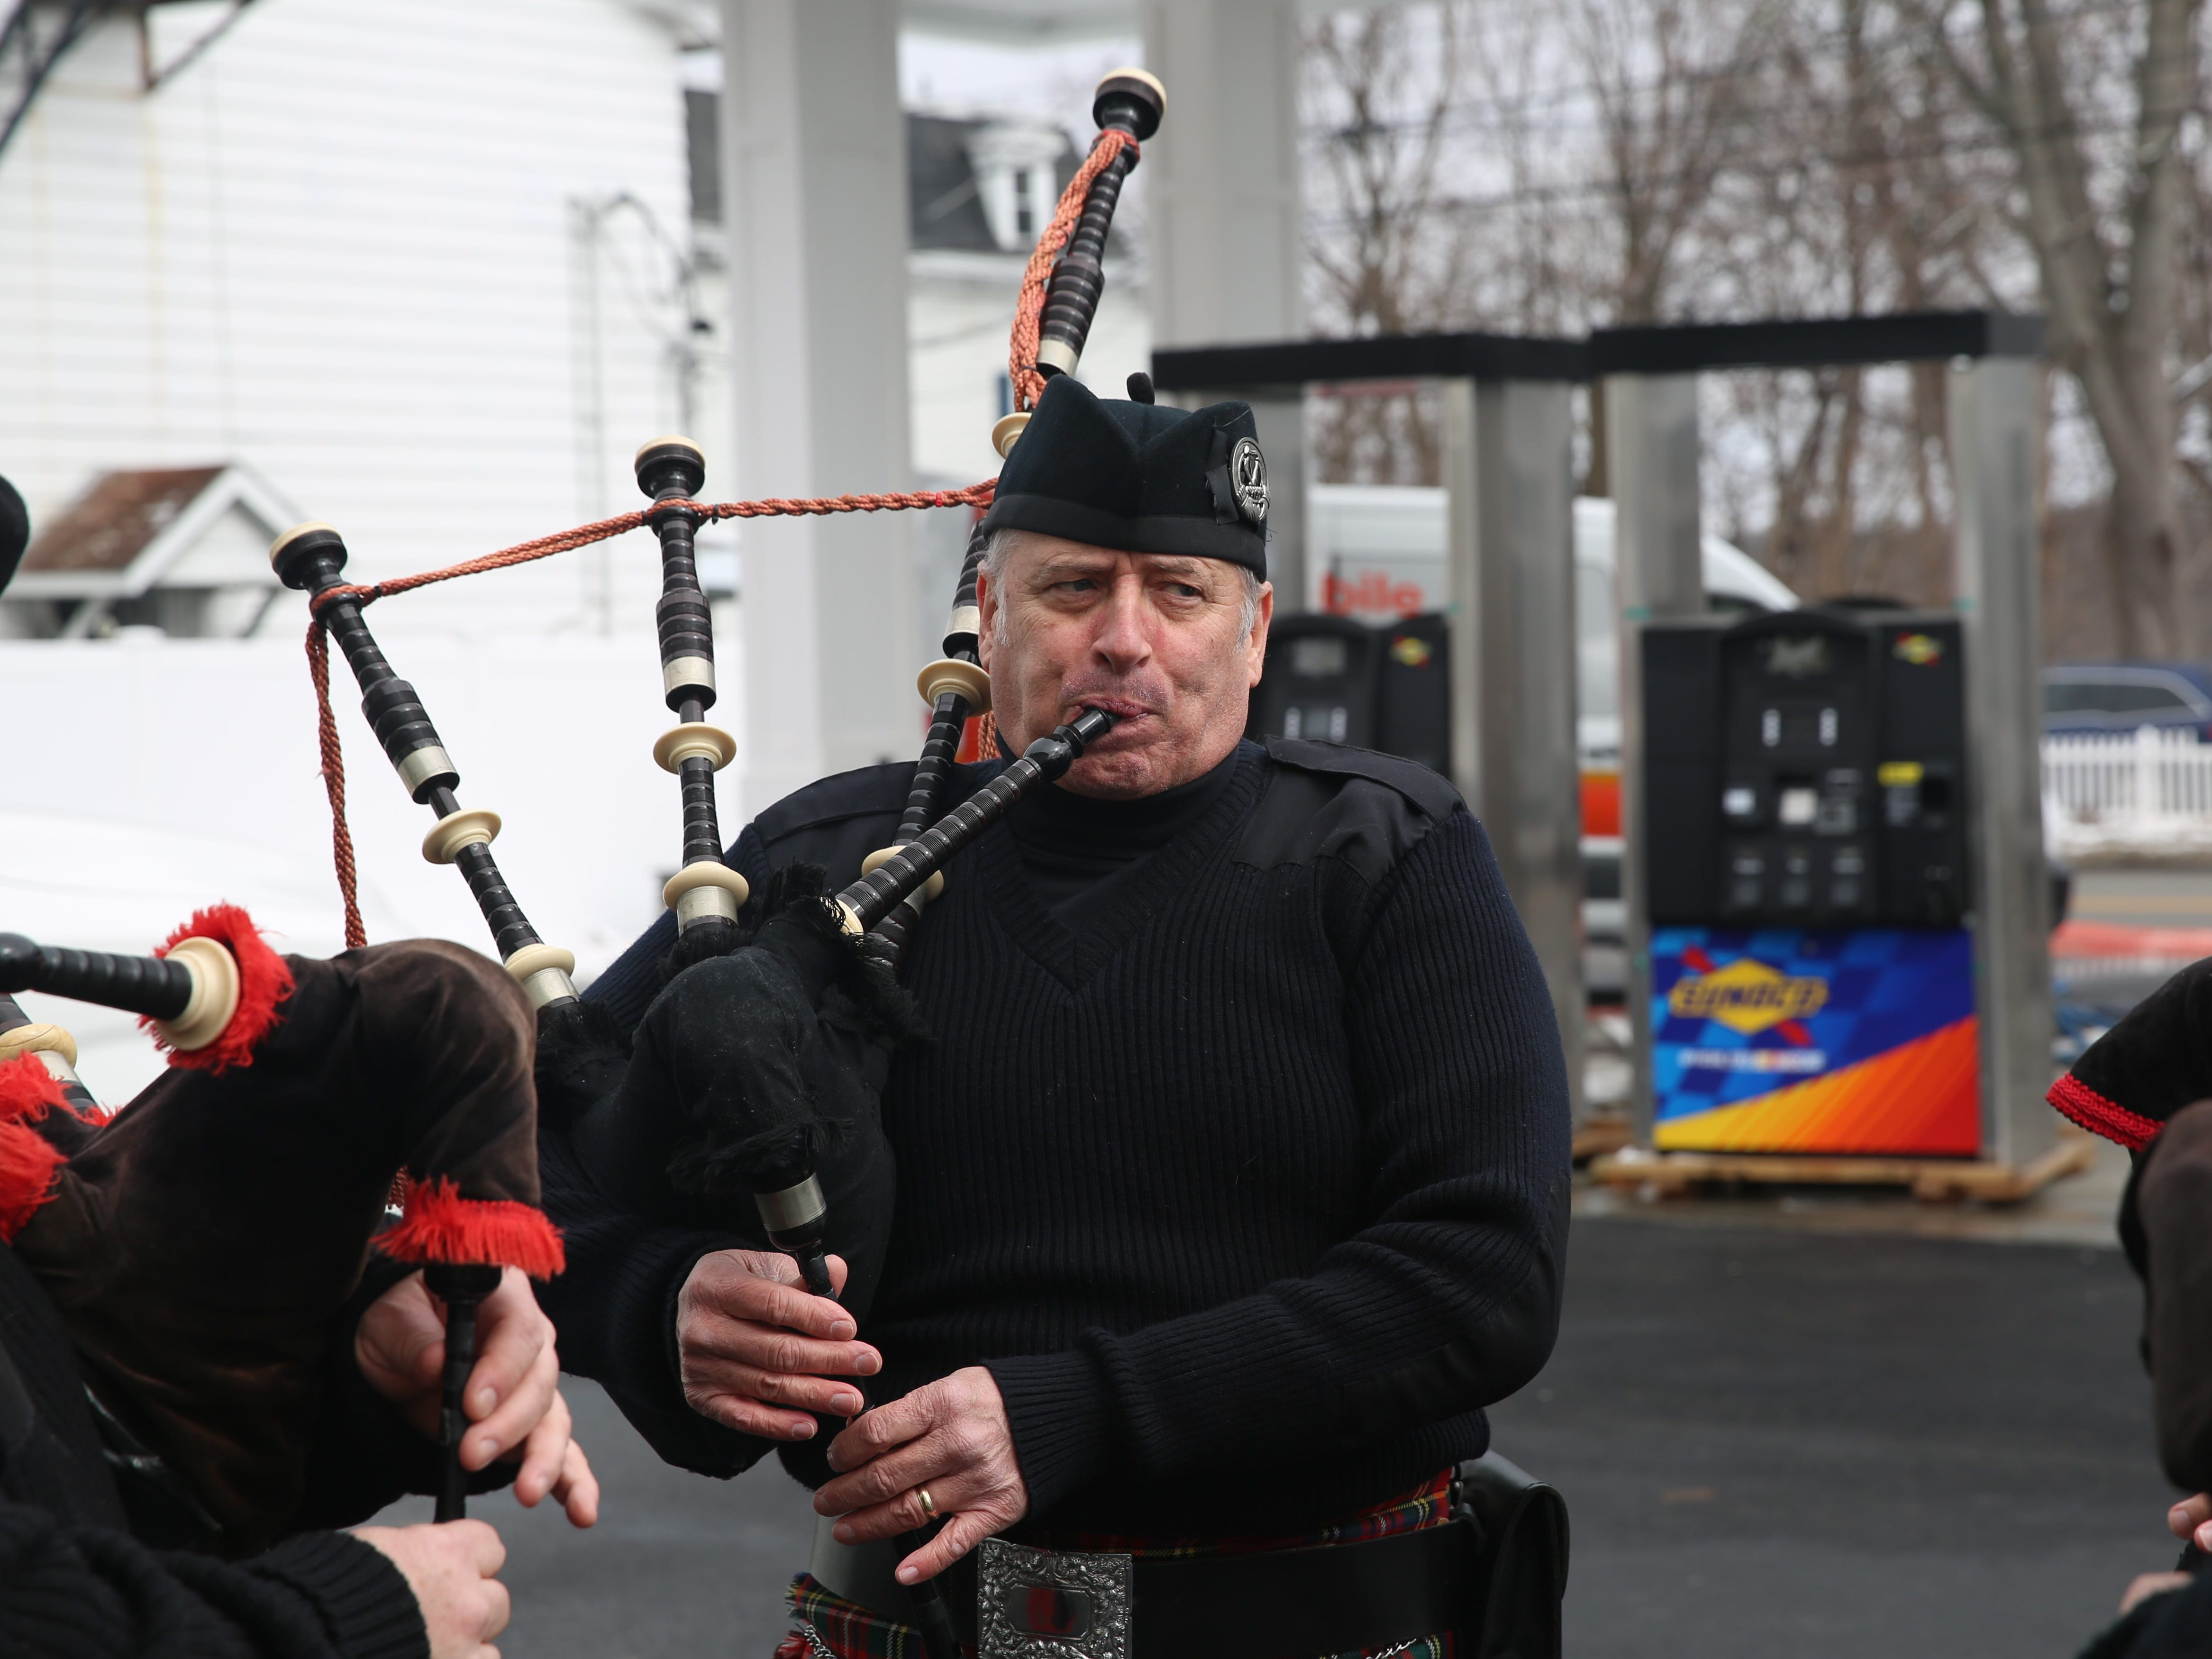 Artie Hoar, of Hudson Highlands Pipe Band, warms up before the Dutchess County St. Patrick's Day Parade begins on Saturday.